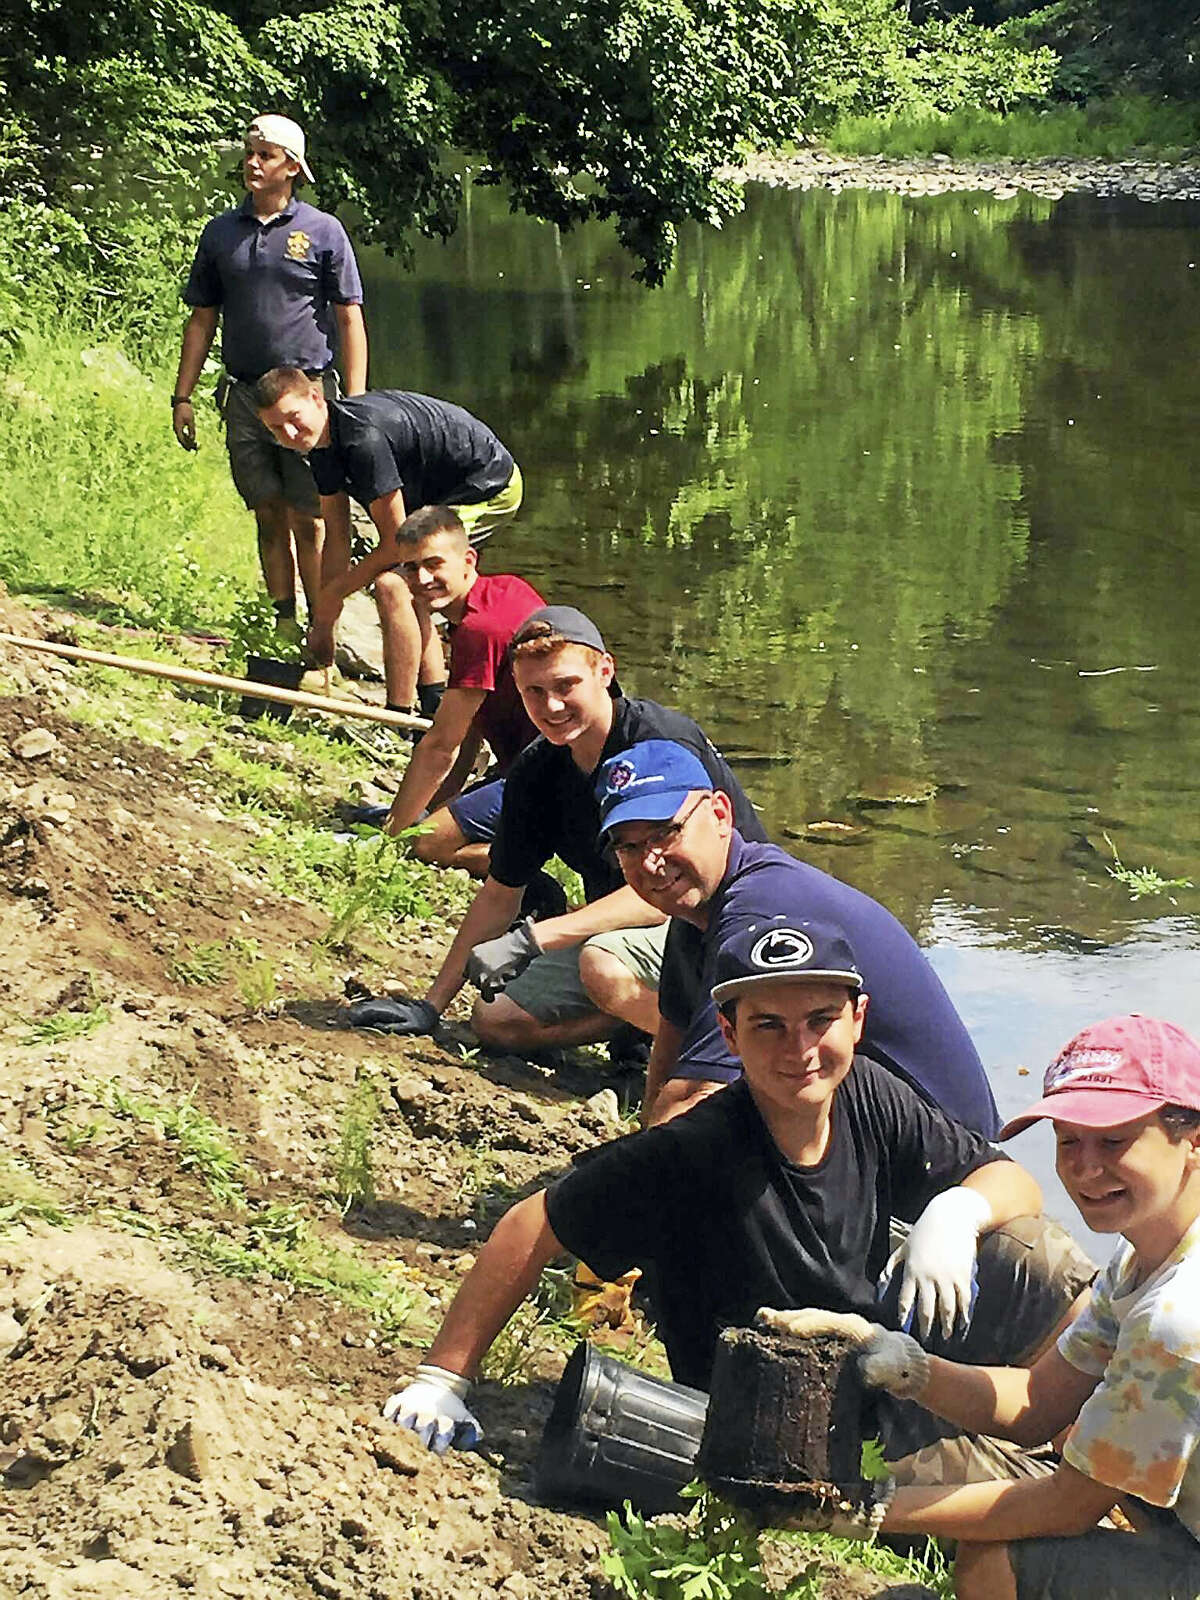 Contributed photos Gunnery students take part in Brendon Vejseli's Eagle Scout project on the Shepaug River.